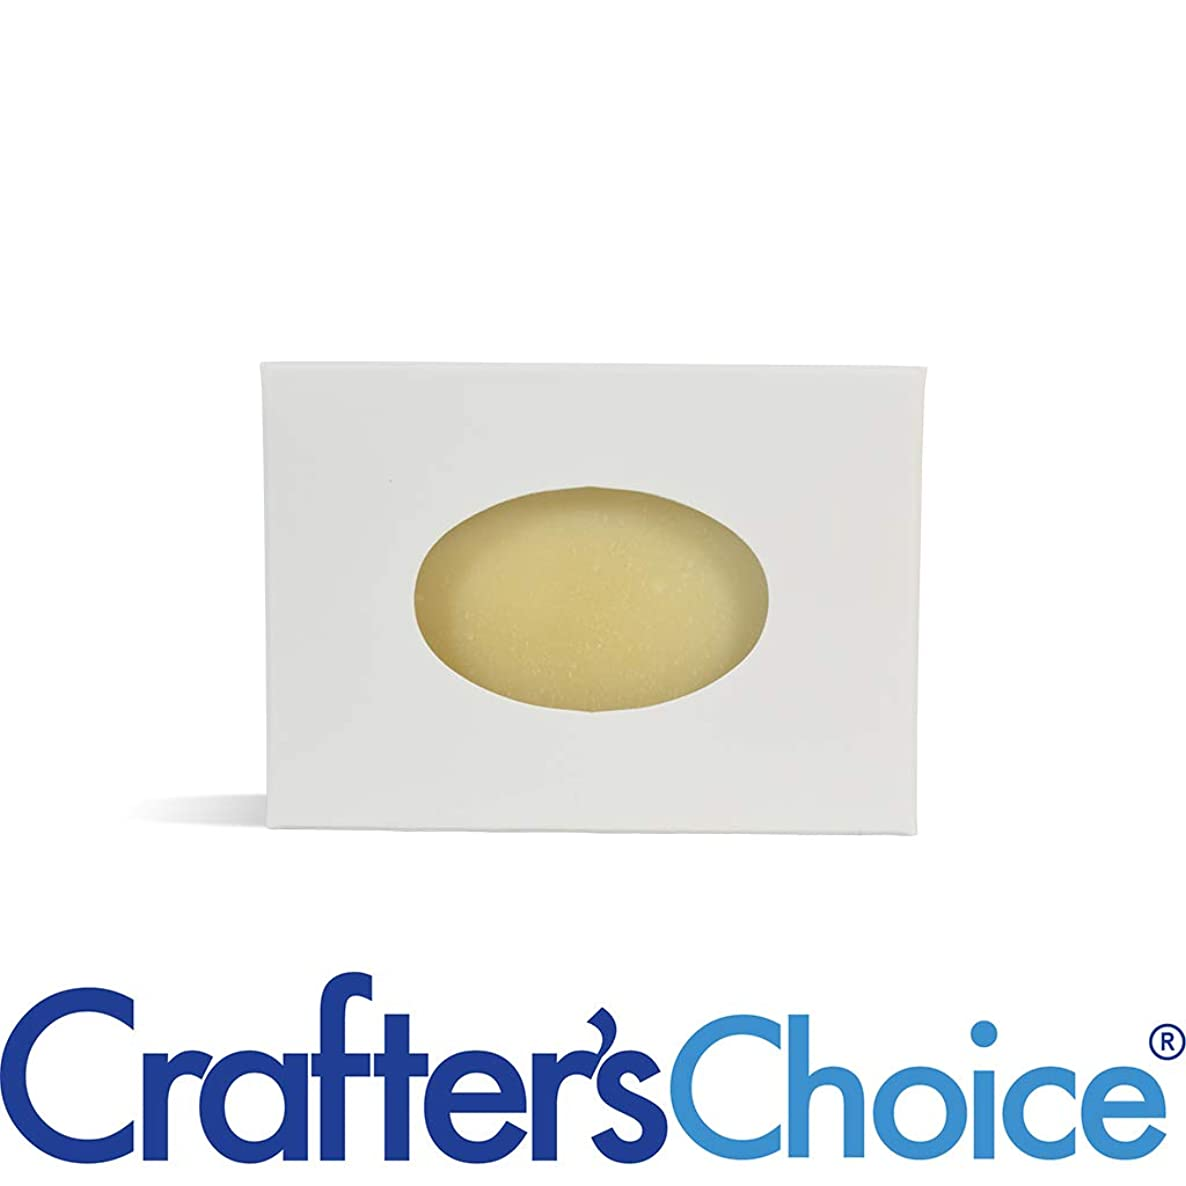 Crafter's Choice White Oval Window Soap Box - Homemade Soap Packaging - Soap Making Supplies - 100% Recycled Materials - Made in USA! 50 Pack